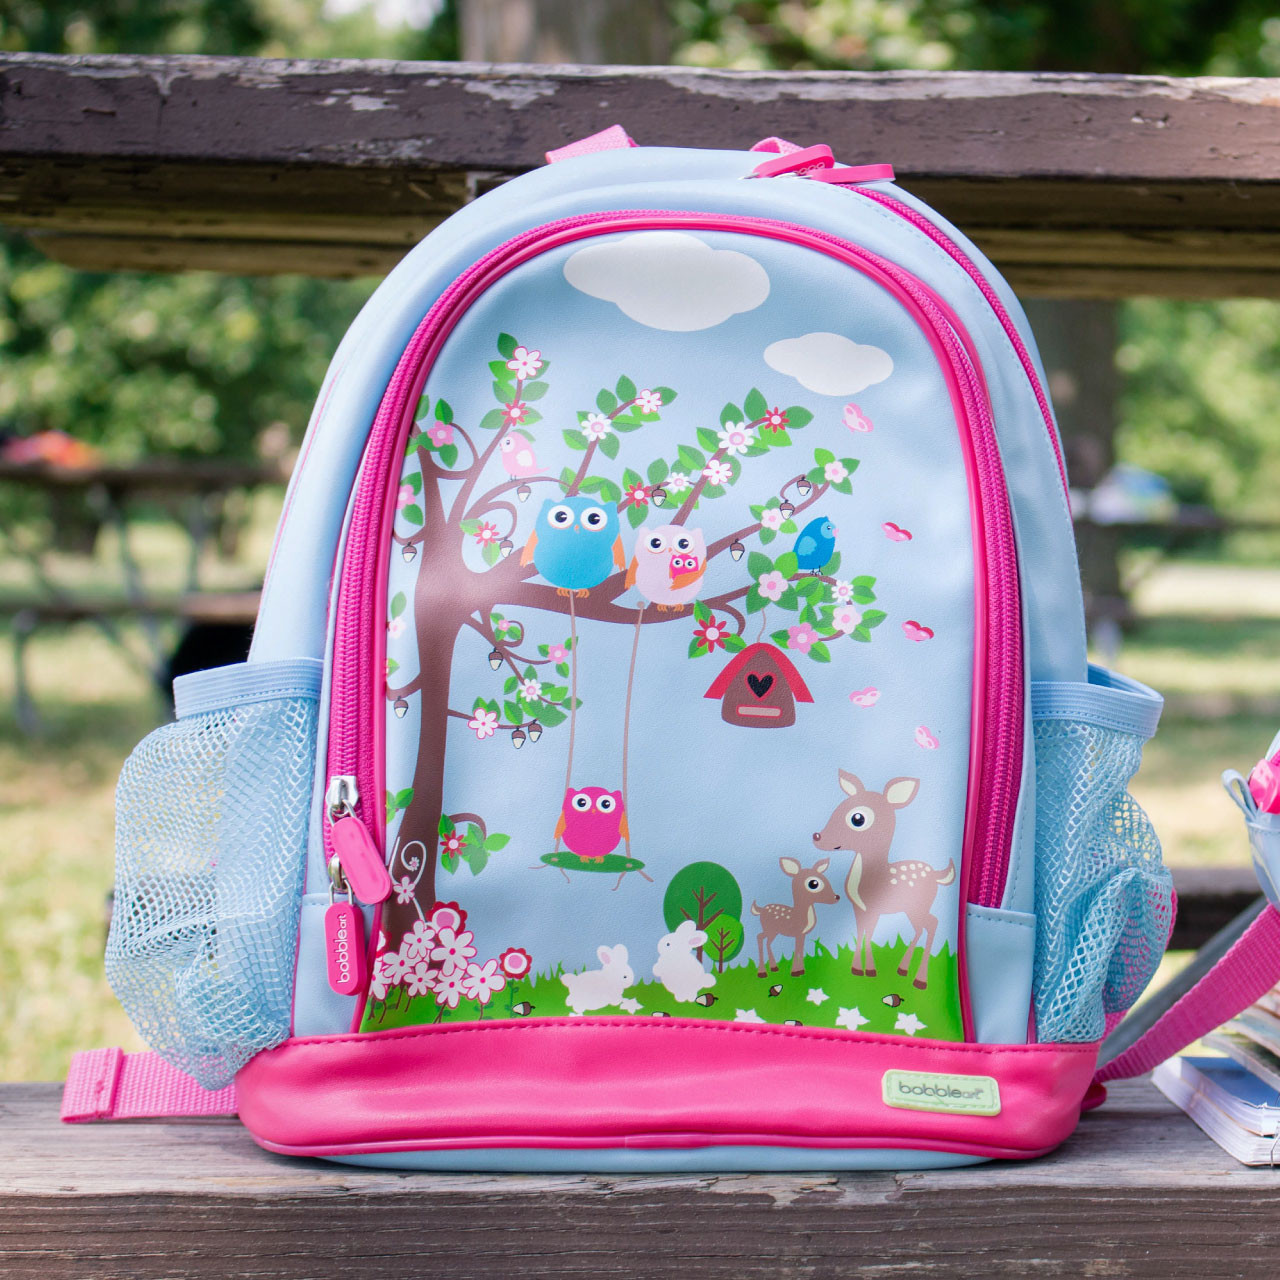 57bb181ccb Bobble Art Small Backpack for Toddlers. See more images